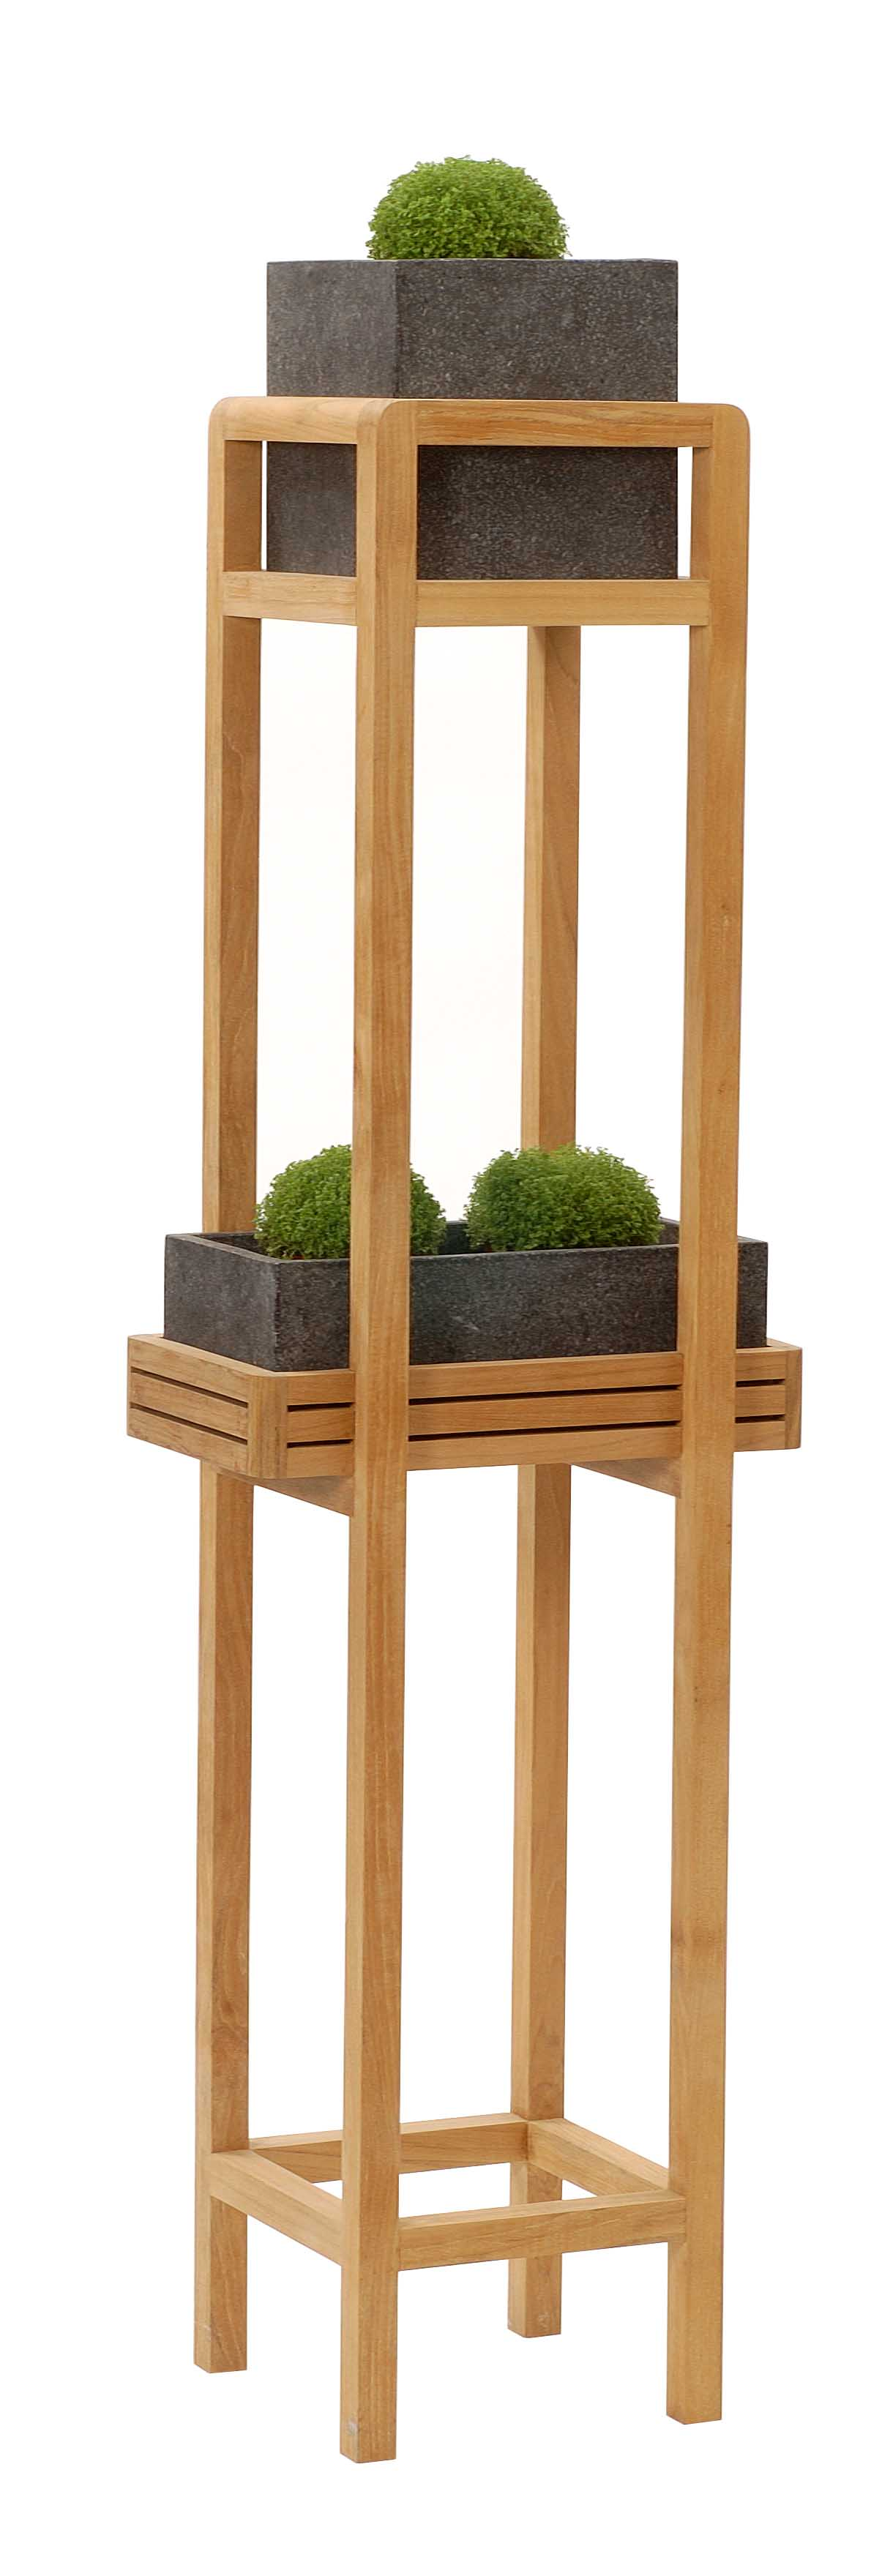 Plant Shelving Indoor Serre Tall Plant Stand Pr Home